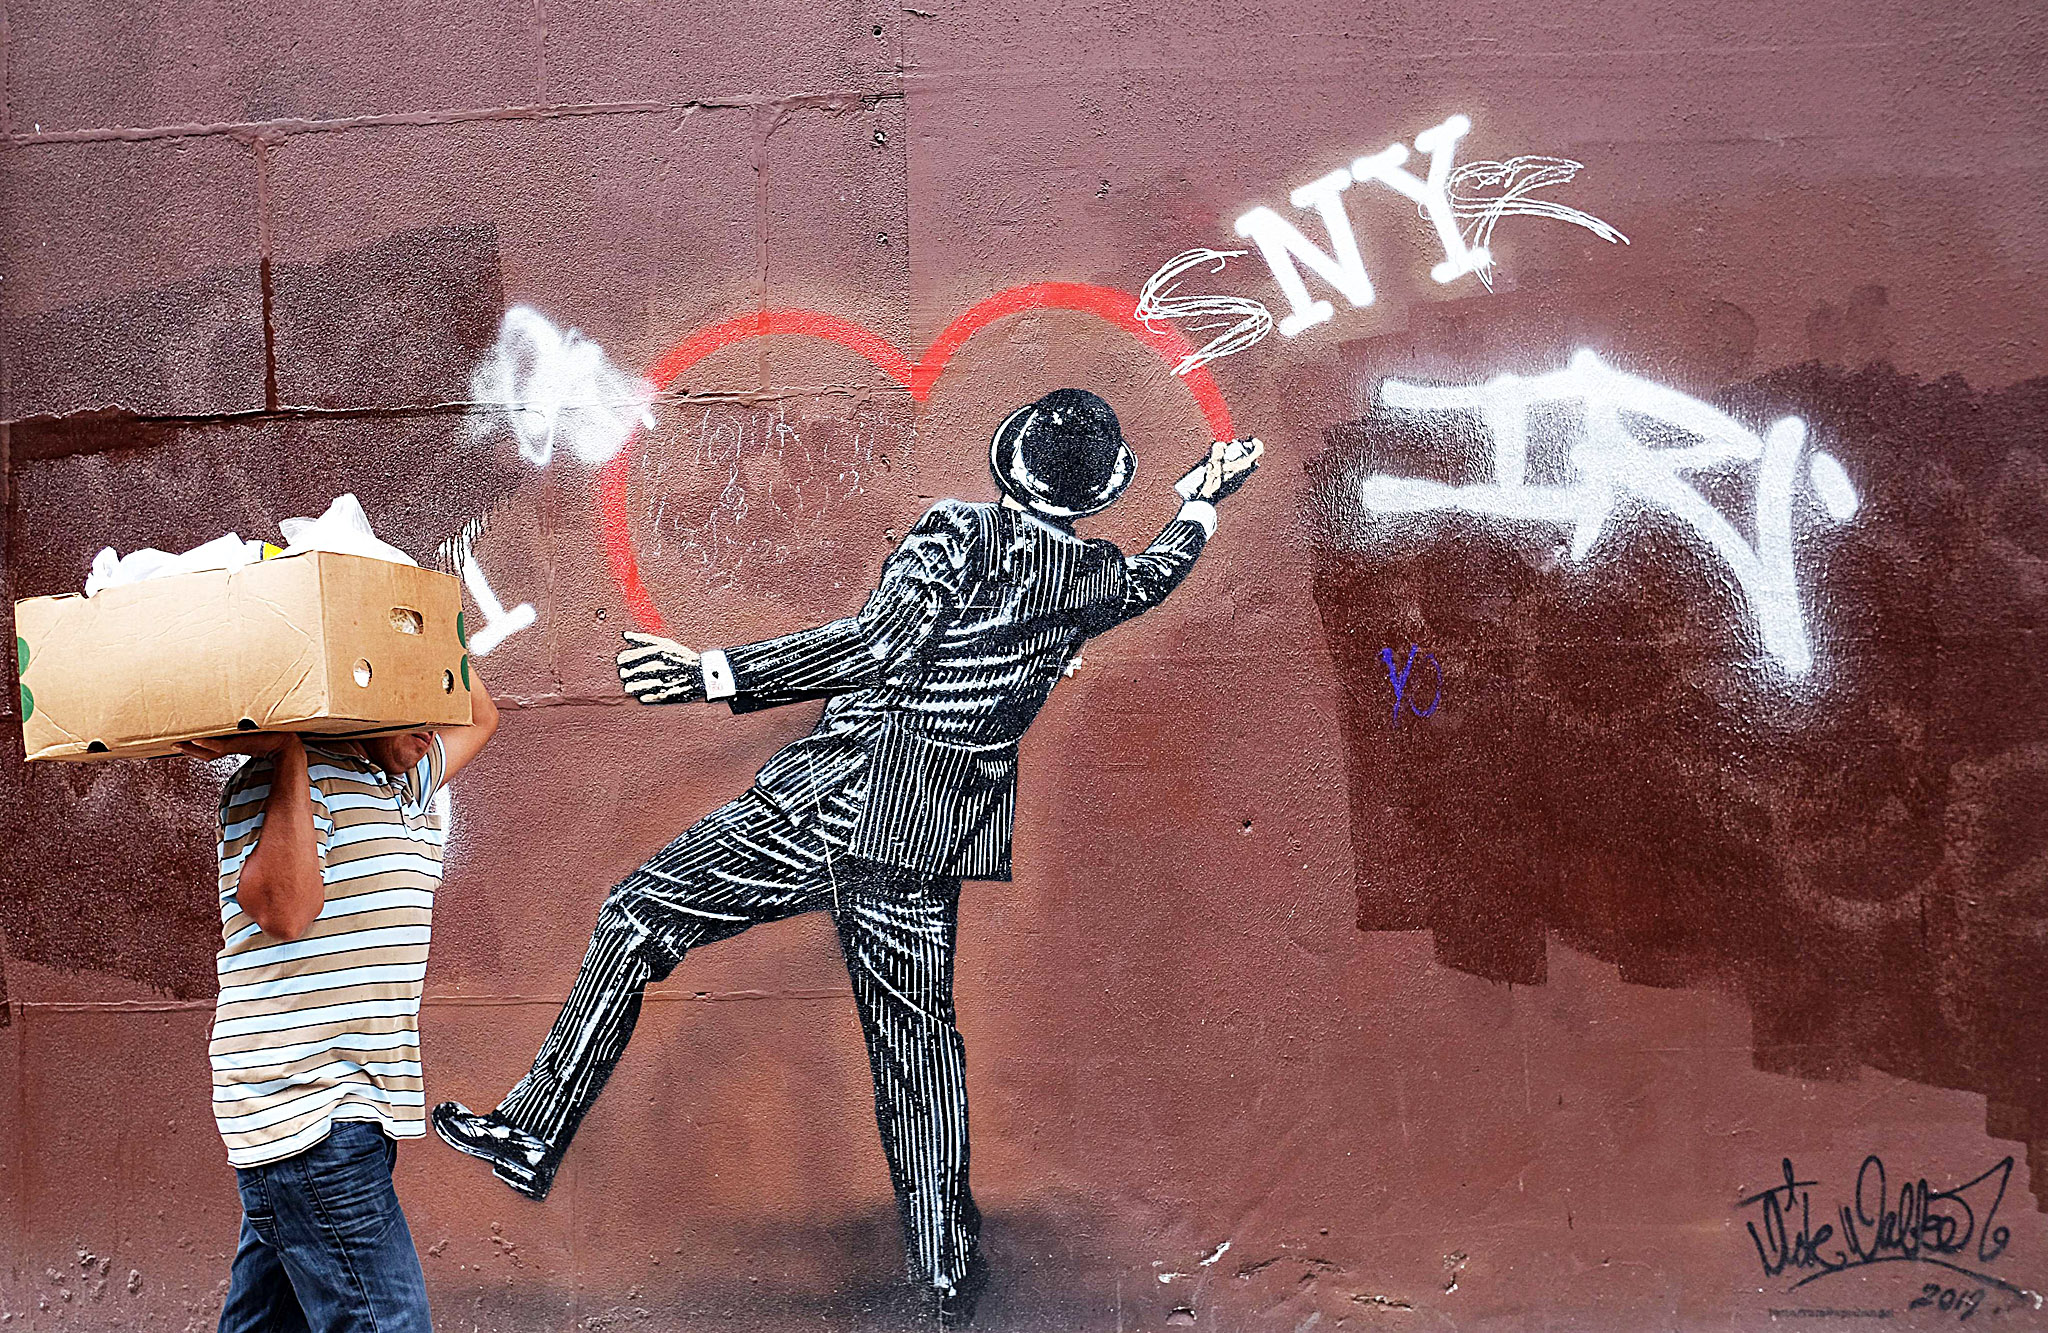 A man walks past street art in ...TOPSHOTS A man walks past street art in New York on June 23, 2015. AFP PHOTO/JEWEL SAMADJEWEL SAMAD/AFP/Getty Images